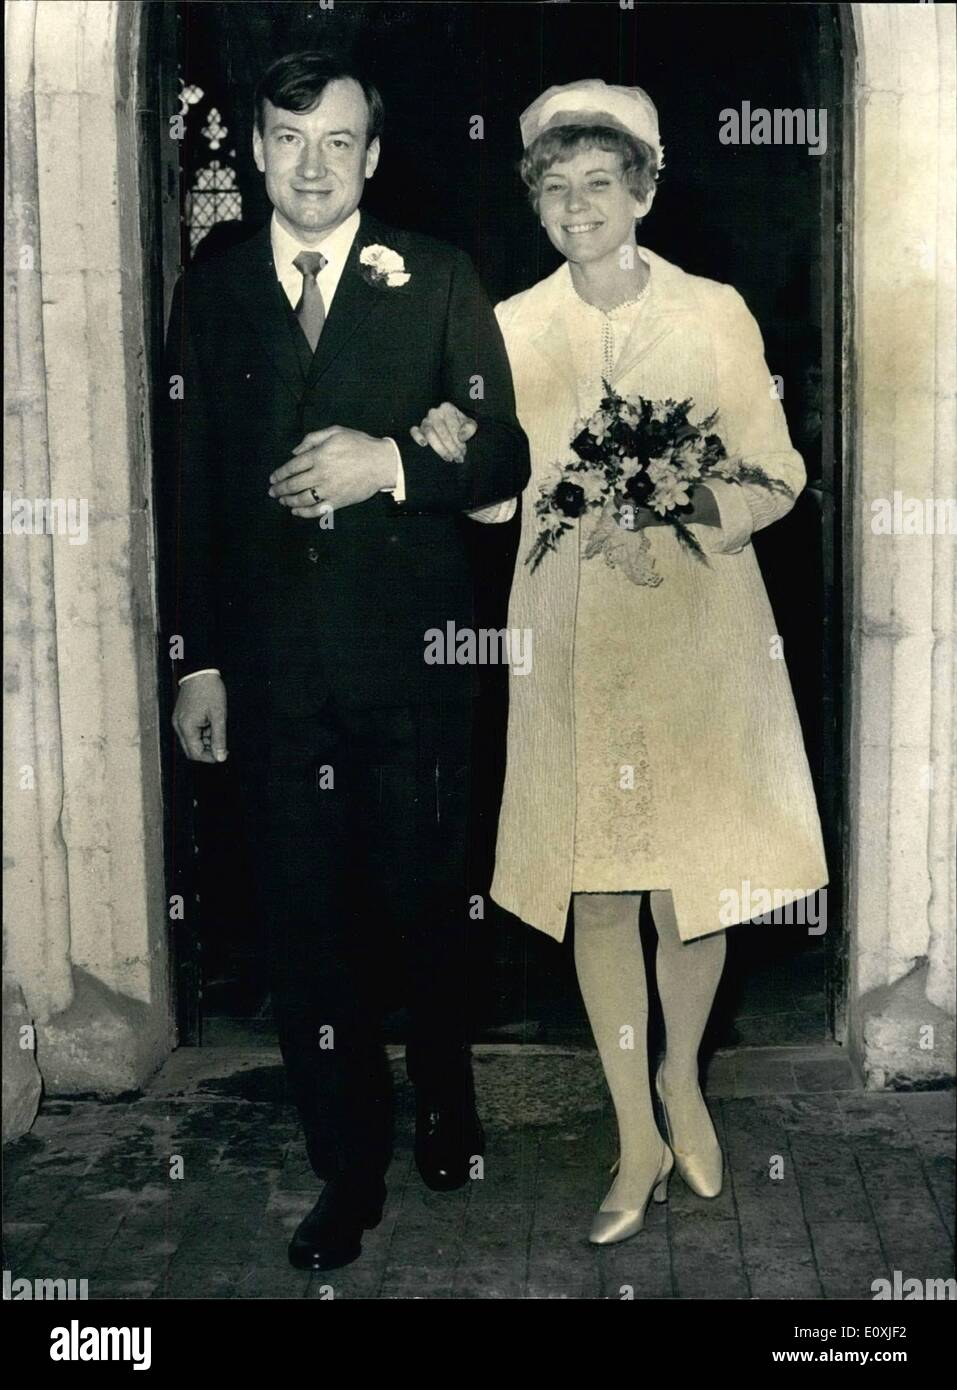 Feb. 02, 1967 - Ex-priest weds: Mr. Charles Davis, 43, the former Roman Catholic Priest who professor to Theology at Heythrop College Oxford - but has now been elected to a Visiting Fellowship at Clare College, Cambridge was married this afternnon to Miss Florence Henderson, 36, a former Roman Catholic and who is American, at All Saints haslingfield, near Cambridge, the Village's Anglican Parish Church. Mr. Davis renounced his priesthood and left the church just before he was to go to Rome to take part in unity talks between the Anglican and Roman Catholic Churches - Stock Image